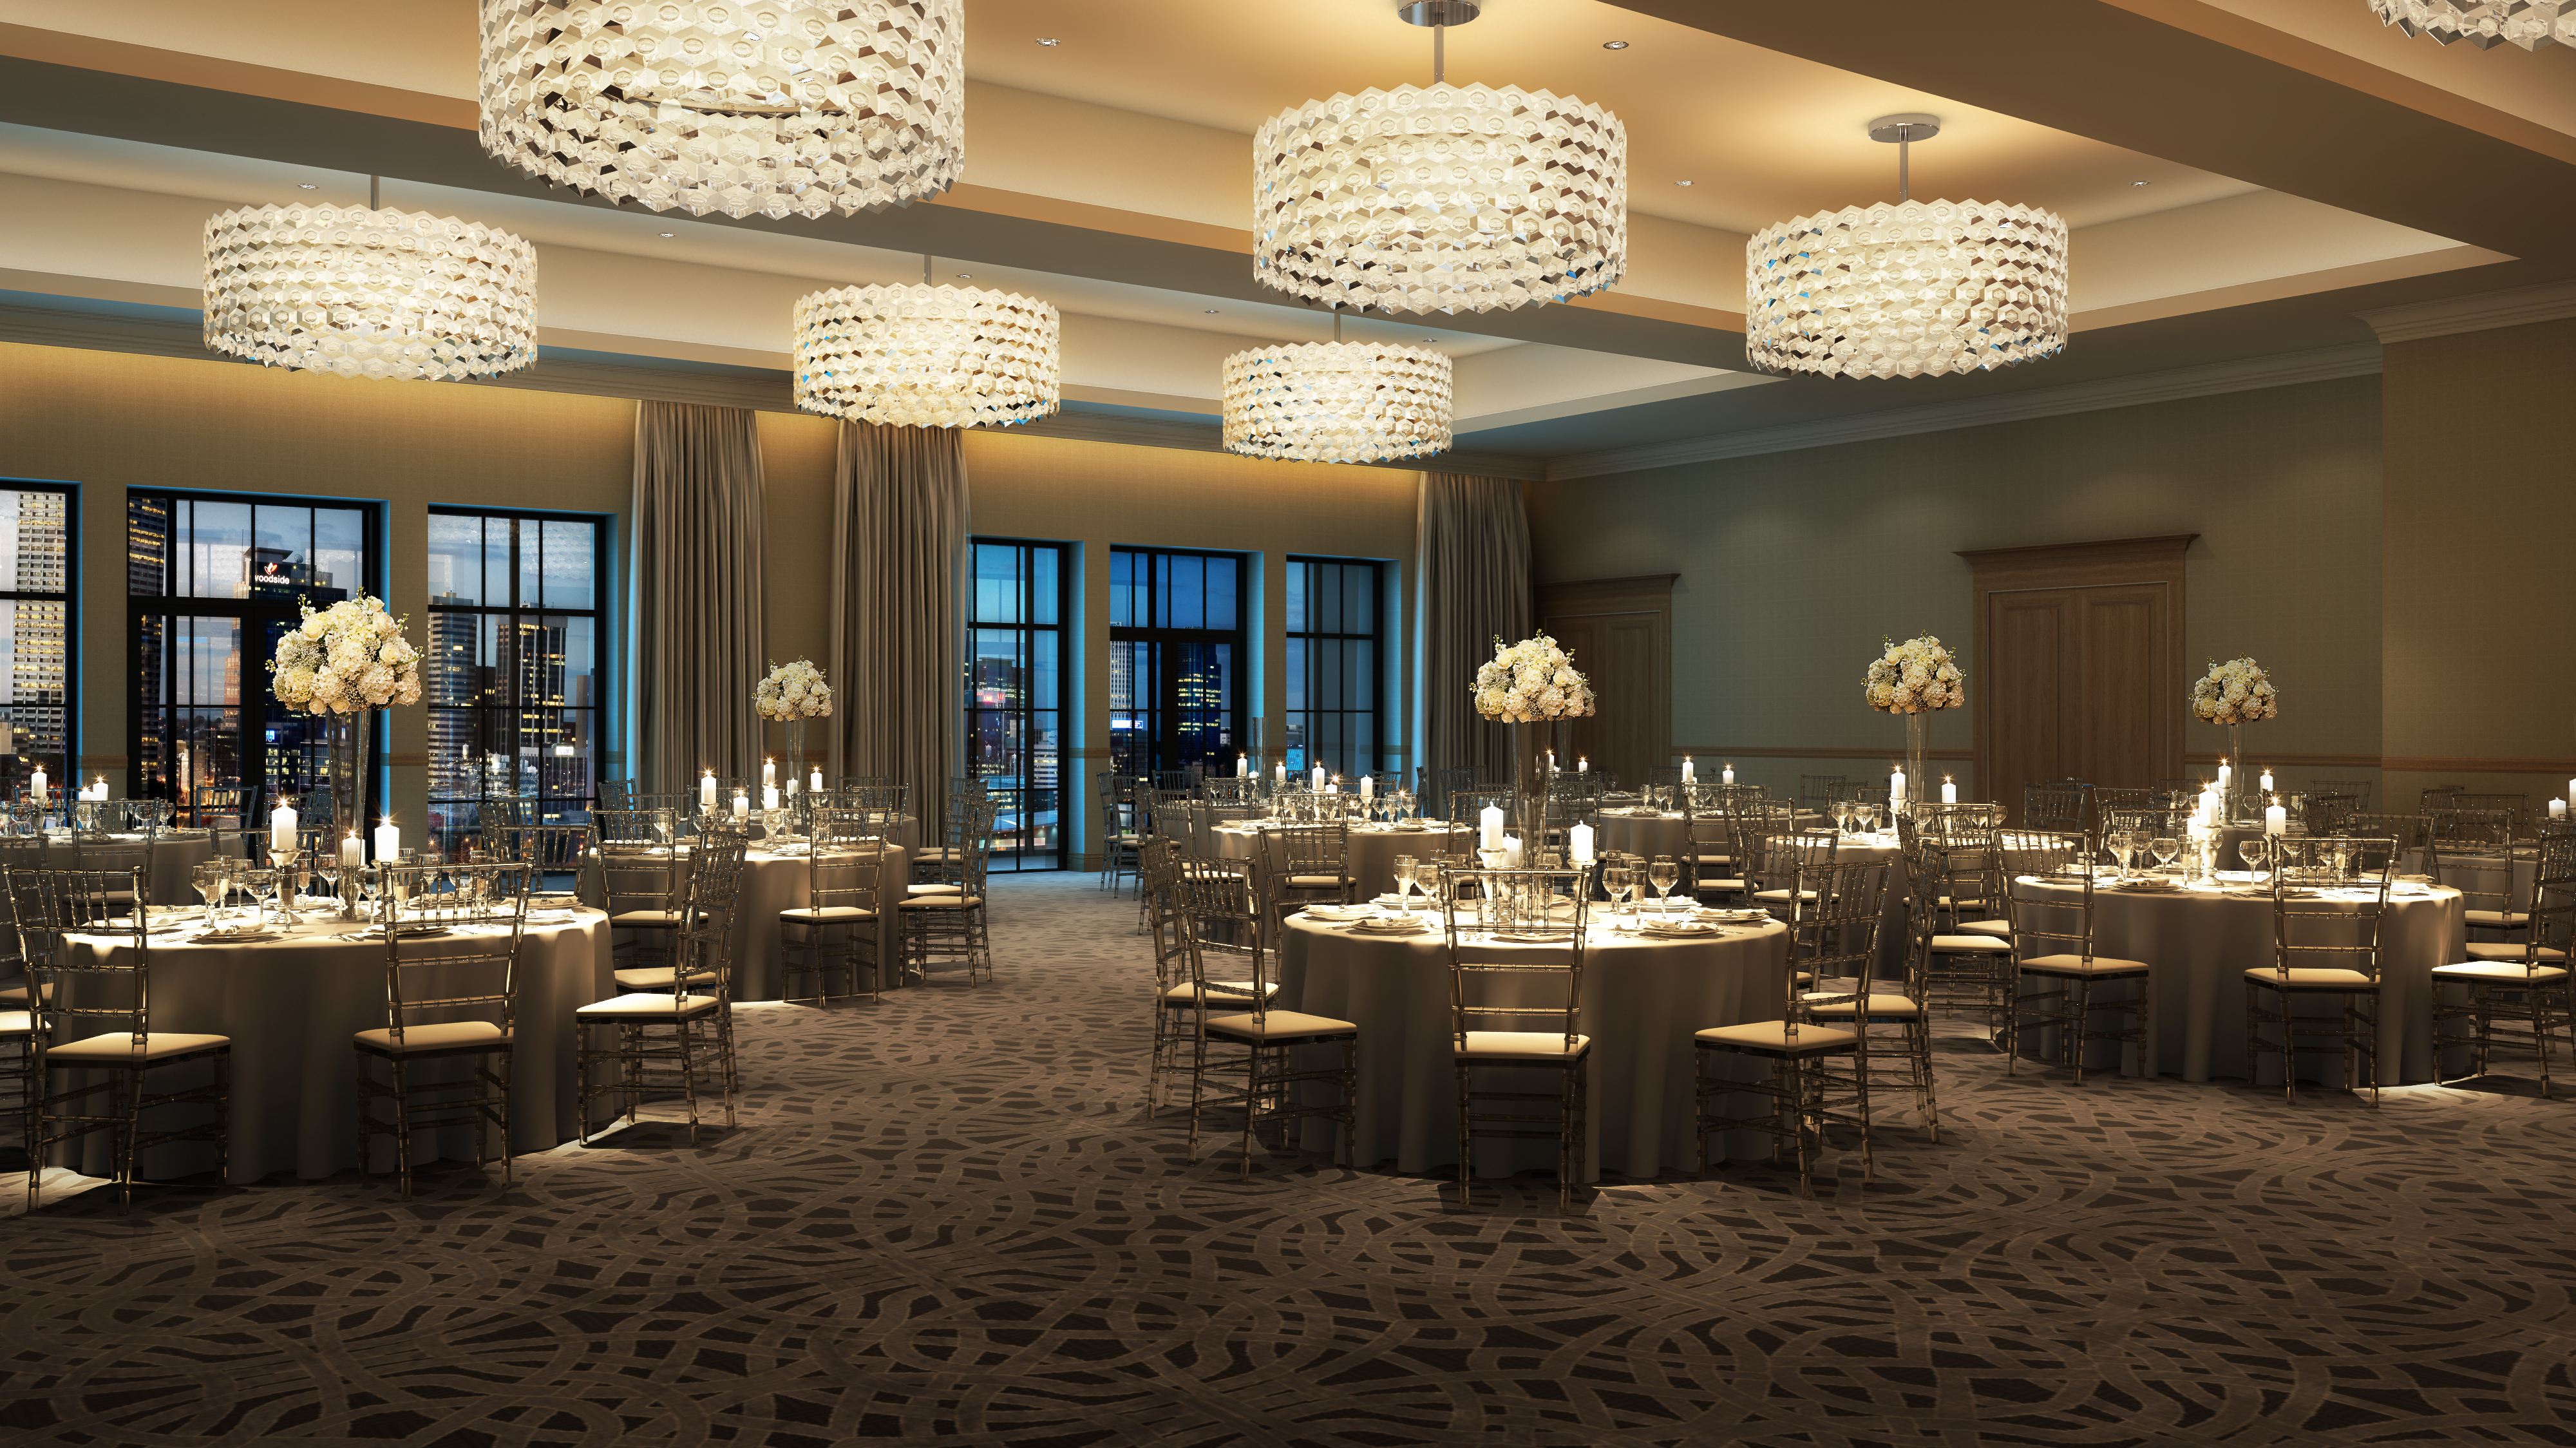 *Hotel ZaZa Memorial City Ballroom_Rendering Courtesy of MetroNational